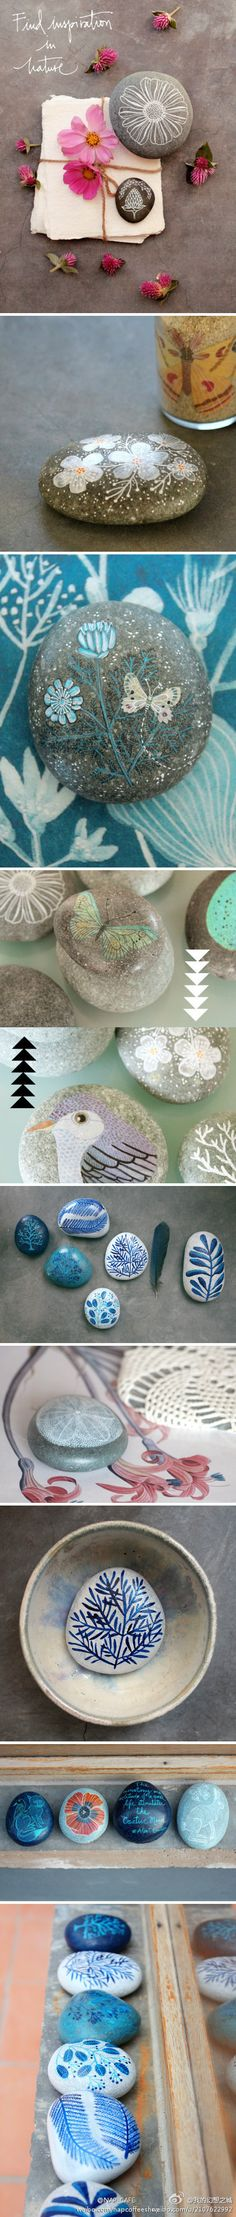 painted rocks, just lovely